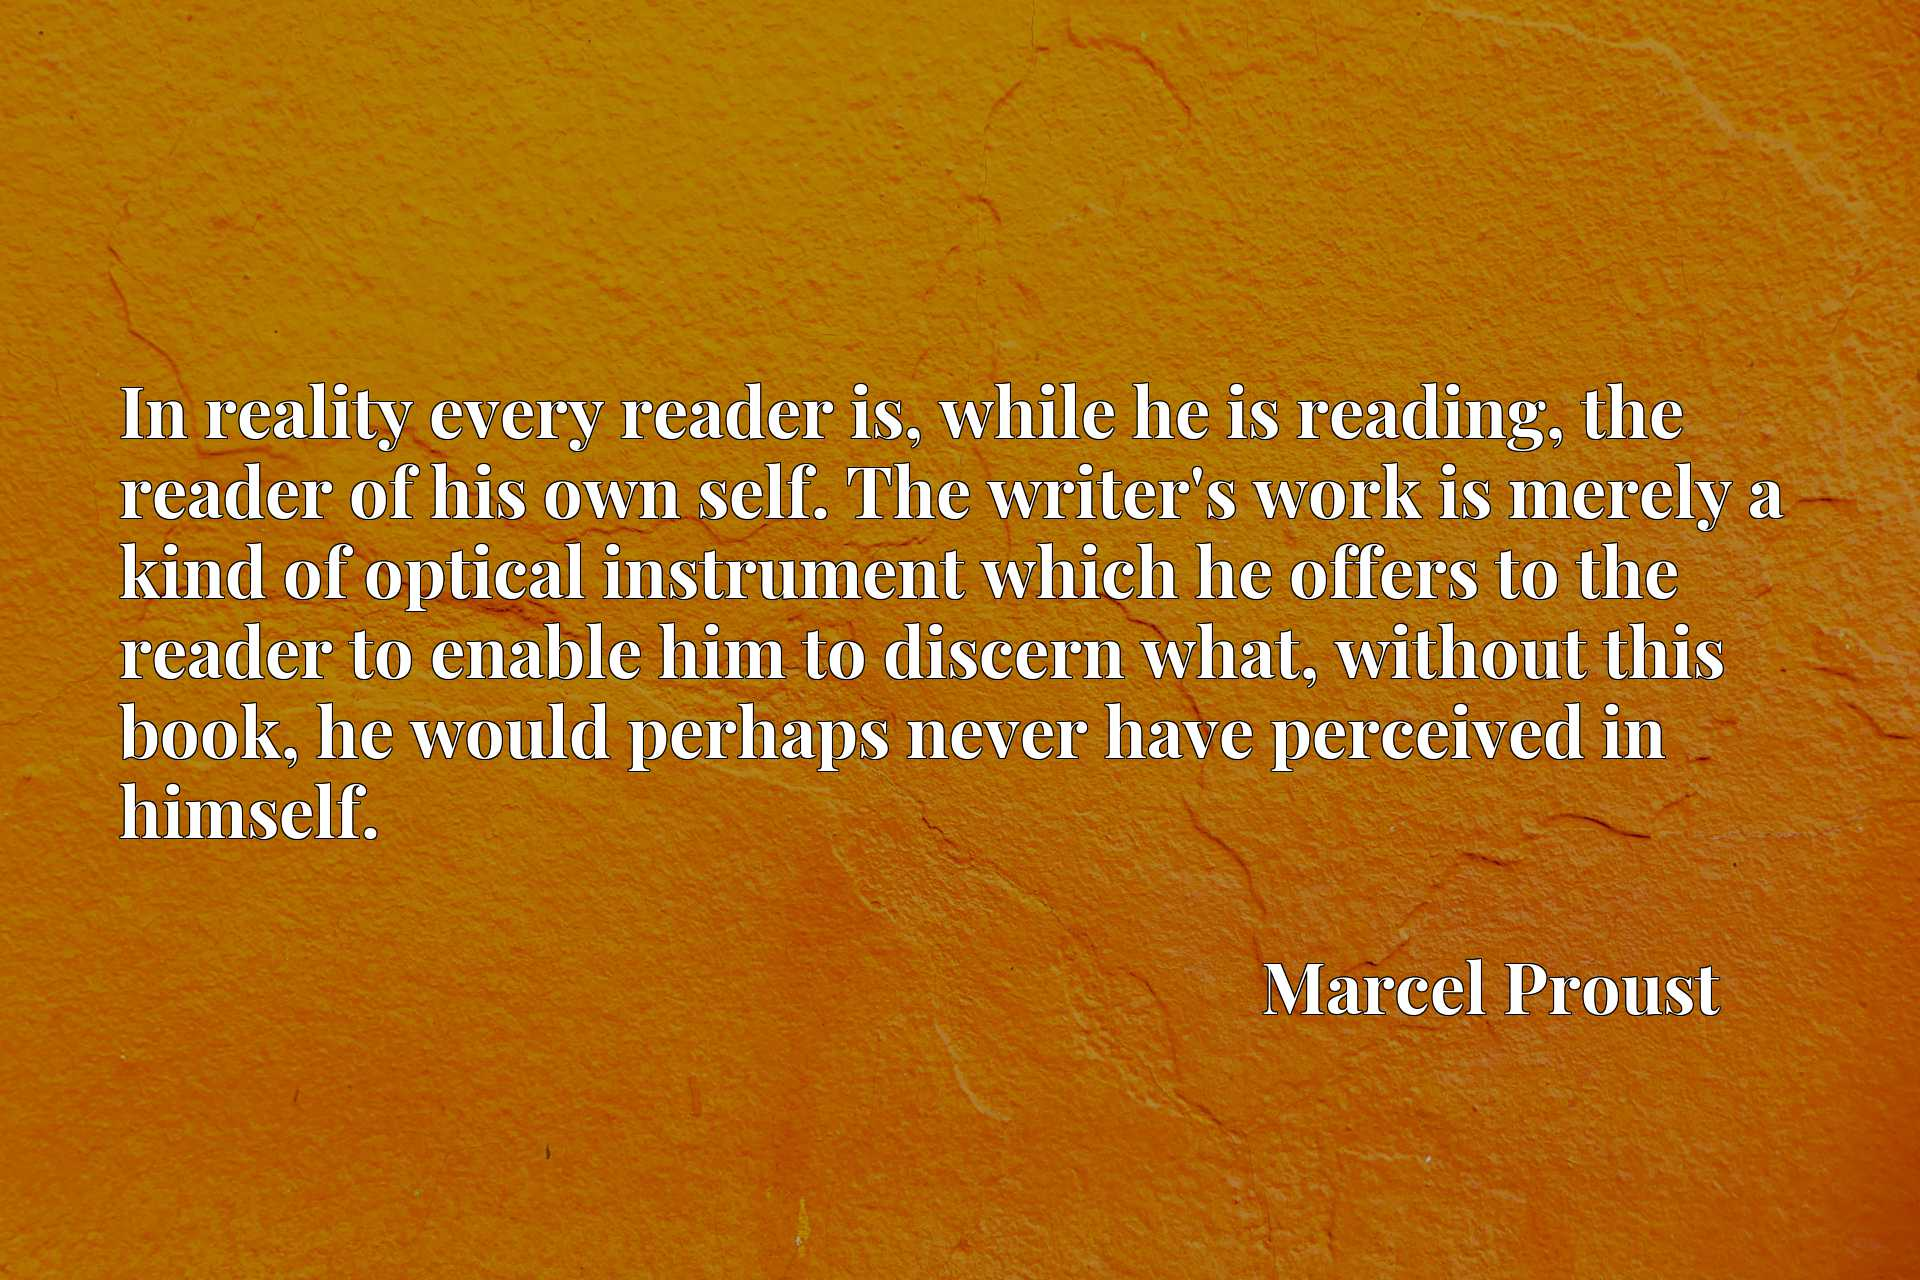 In reality every reader is, while he is reading, the reader of his own self. The writer's work is merely a kind of optical instrument which he offers to the reader to enable him to discern what, without this book, he would perhaps never have perceived in himself.